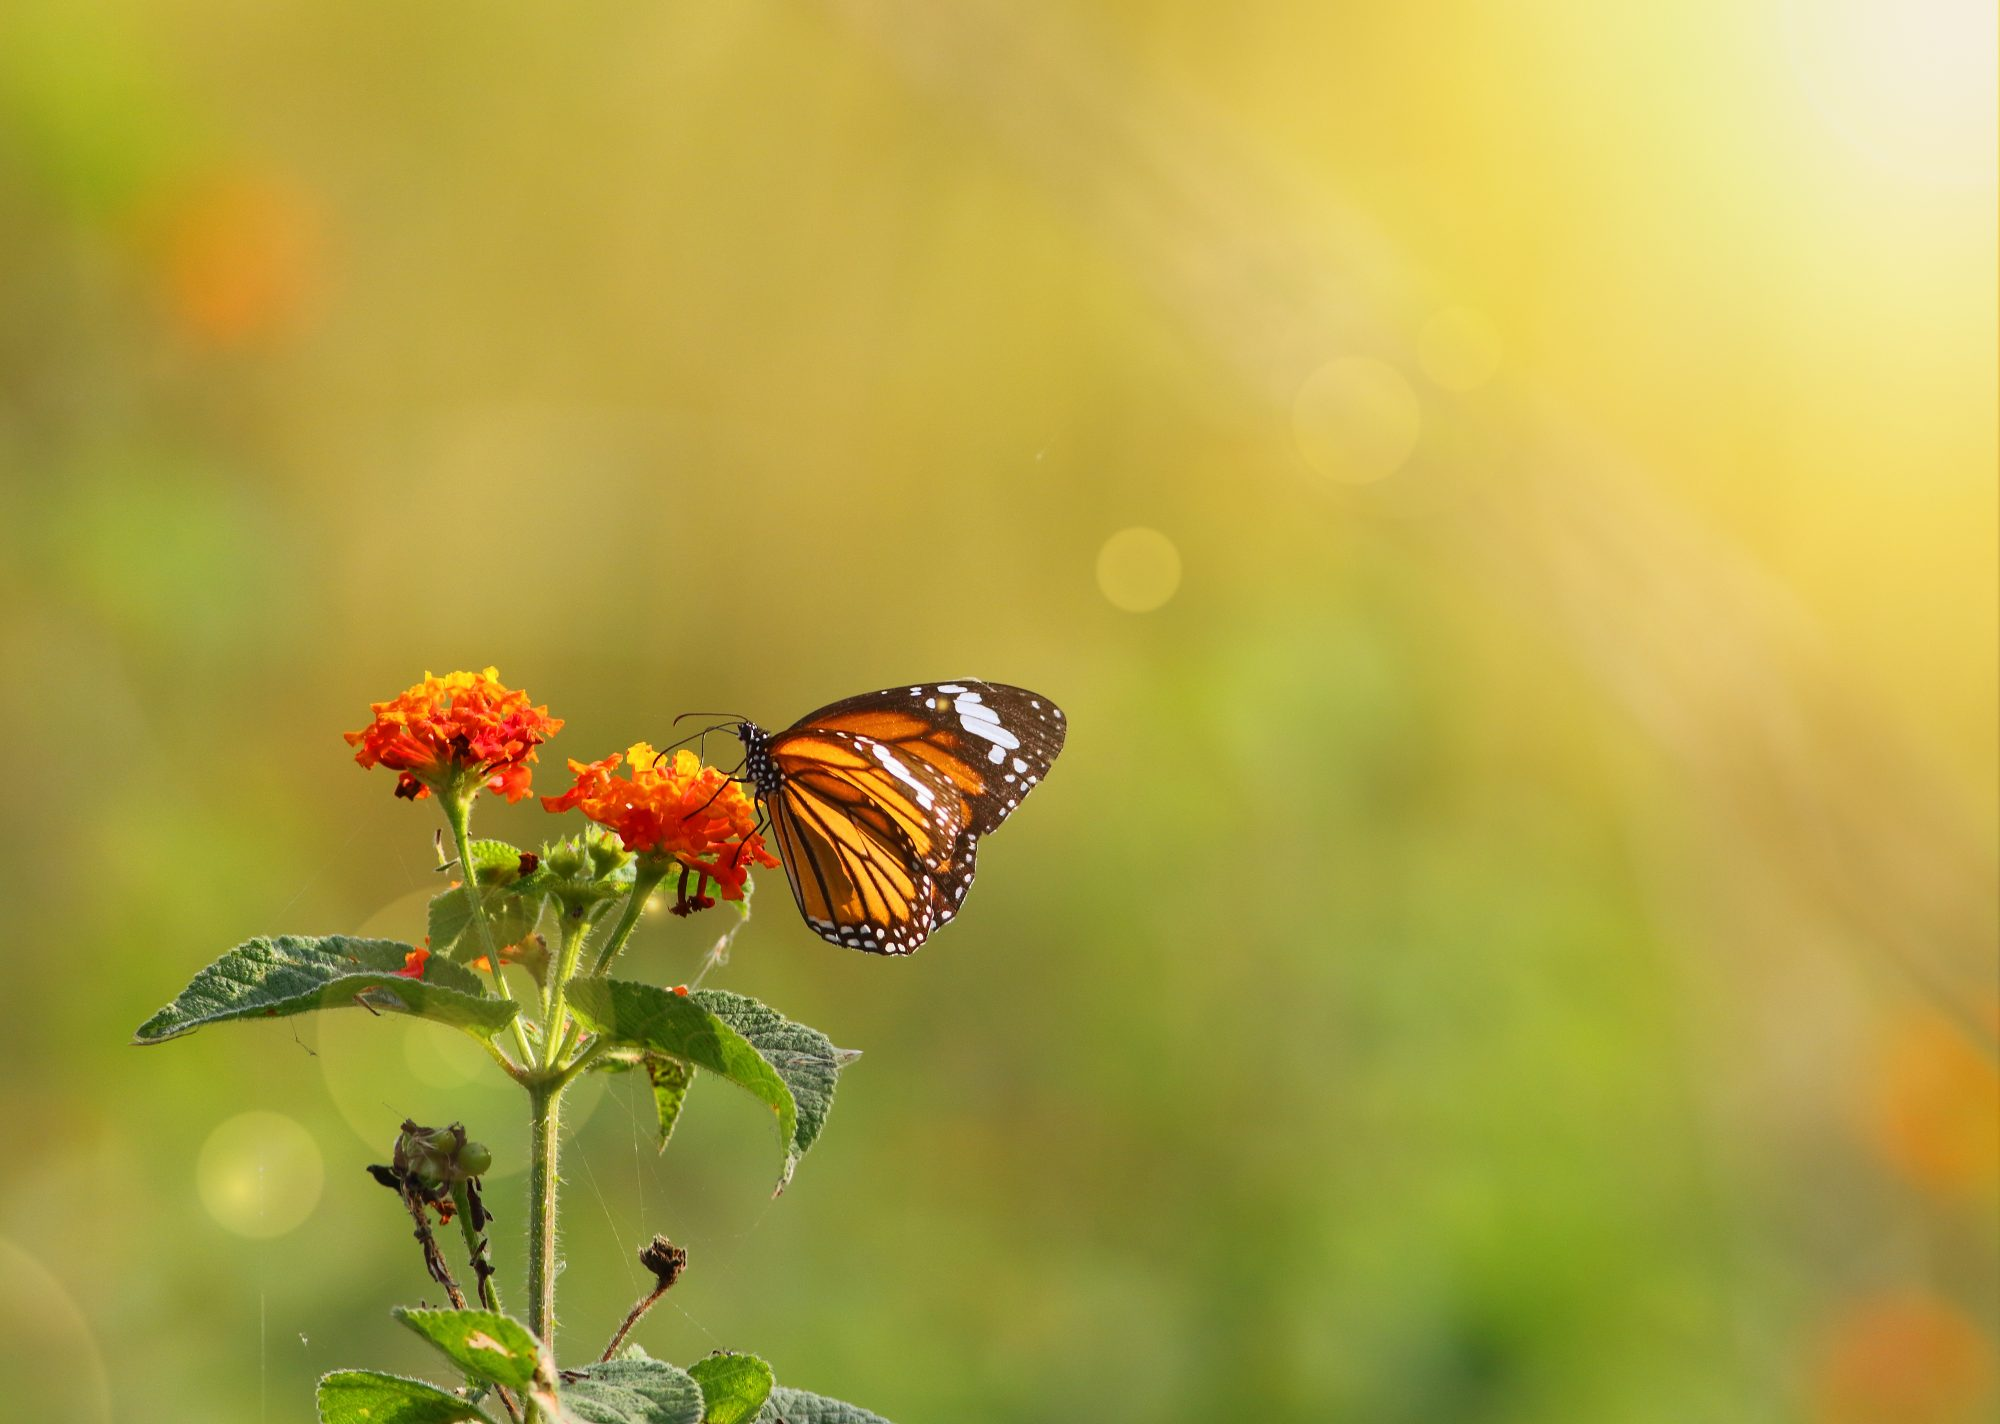 Dahlonega, Georgia Just Welcomed the Most Magical Butterfly Farm in the South